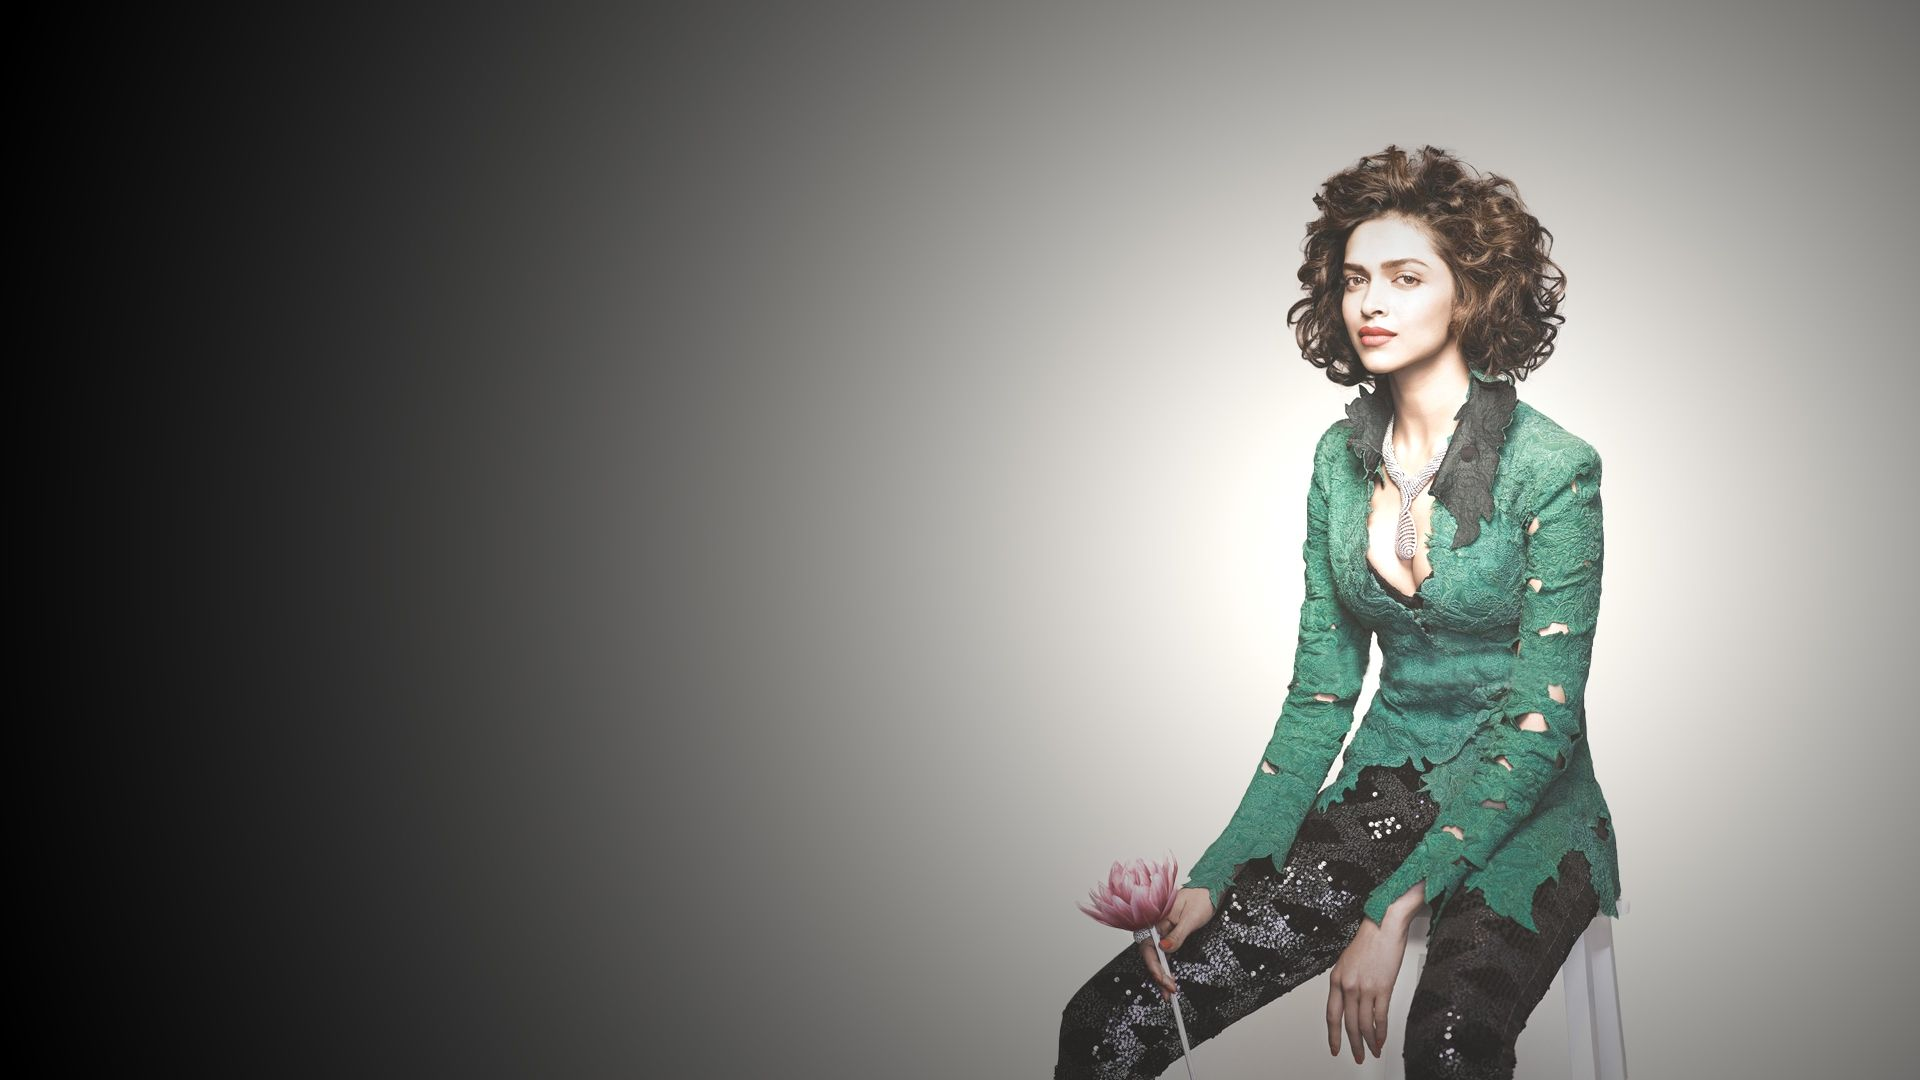 deepika padukone wallpapers hd wallpapers | r72 wallpapers hd